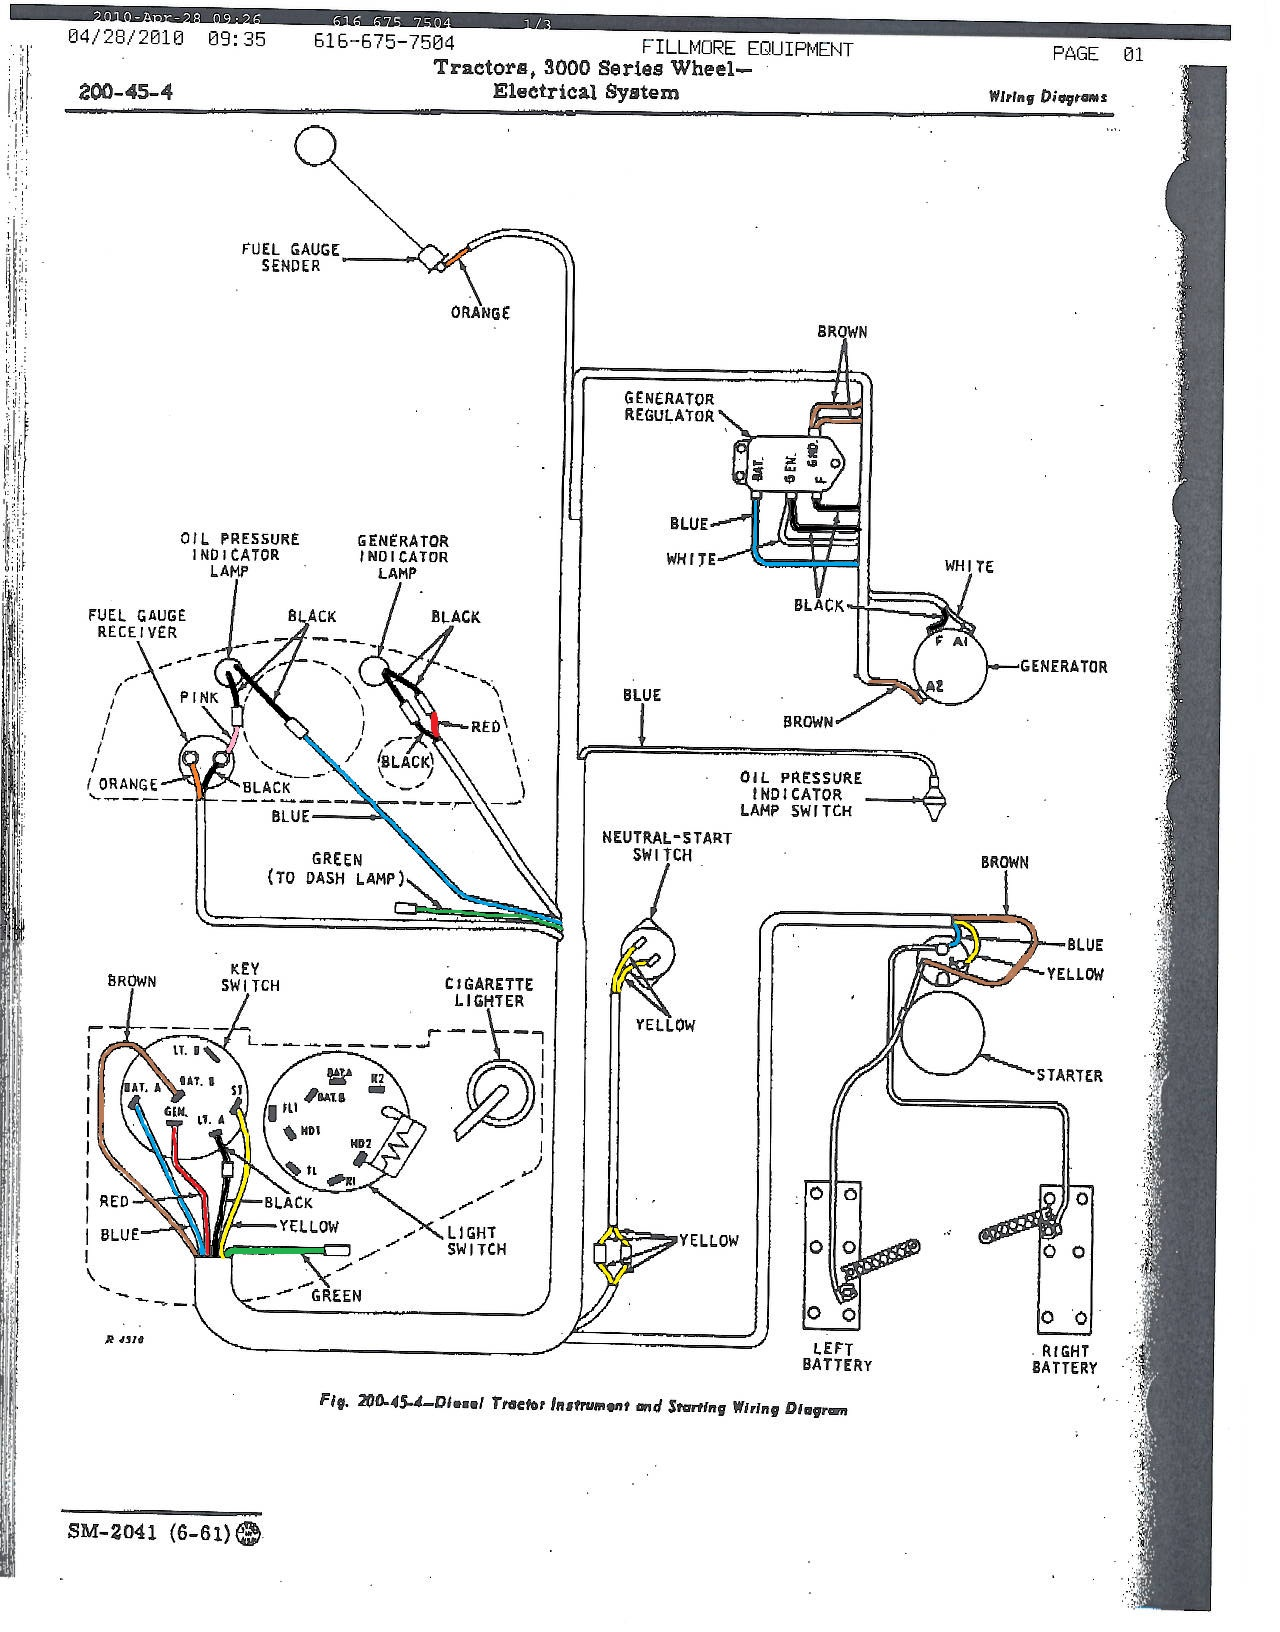 DIAGRAM] John Deere Starter Wiring Diagram Electrical FULL Version HD  Quality Diagram Electrical - L77973HDWIRING.CONTOROCK.ITCONTO ROCK